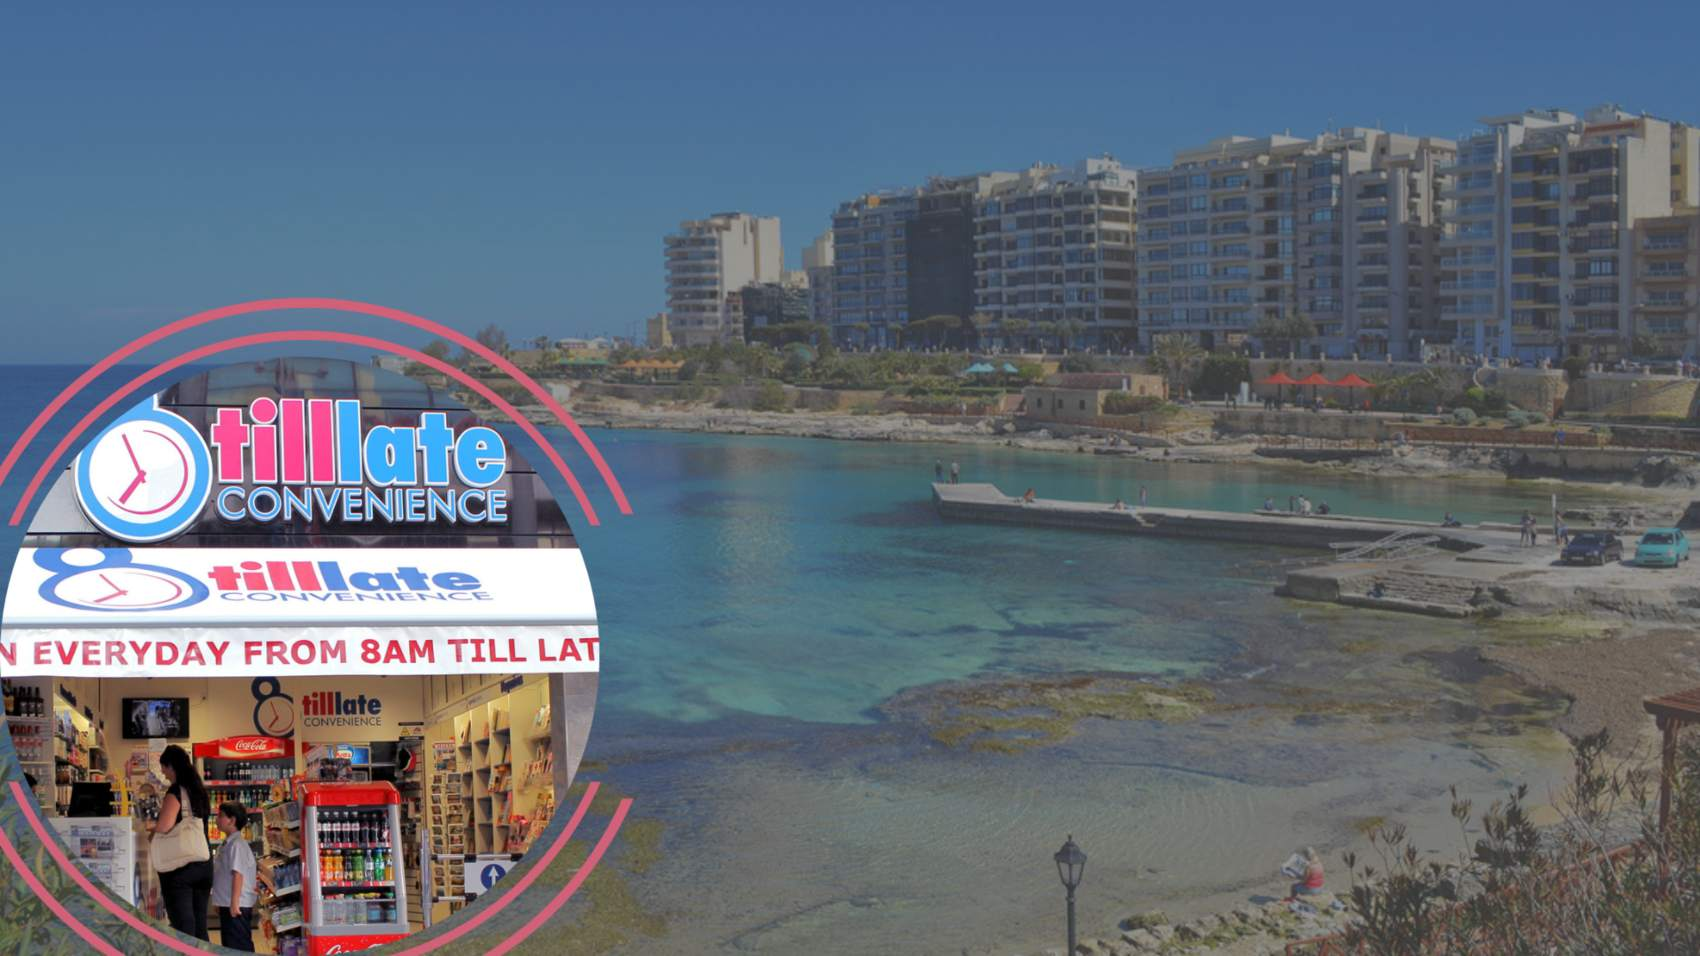 New 8 Till Late Convenience in Sliema